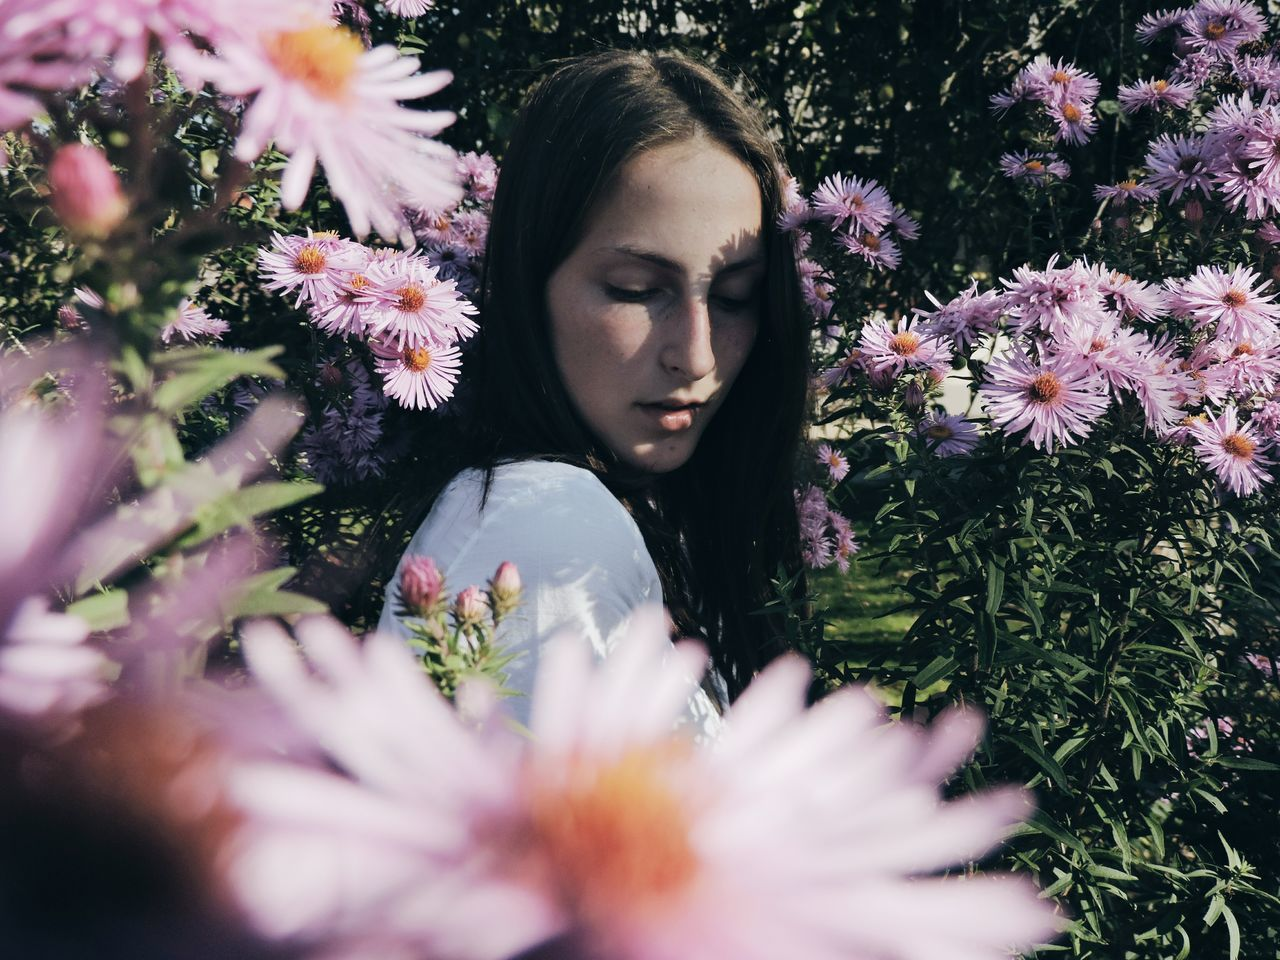 Flower Young Adult Plant Portrait One Young Woman Only Tree Nature Young Women Beauty One Person Only Women Women Day Dreaming Beautiful Woman Beauty In Nature Epic Shot Photography Epic First Eyeem Photo Close-up Day Outdoors Sky Canon Nikon Place Of Heart